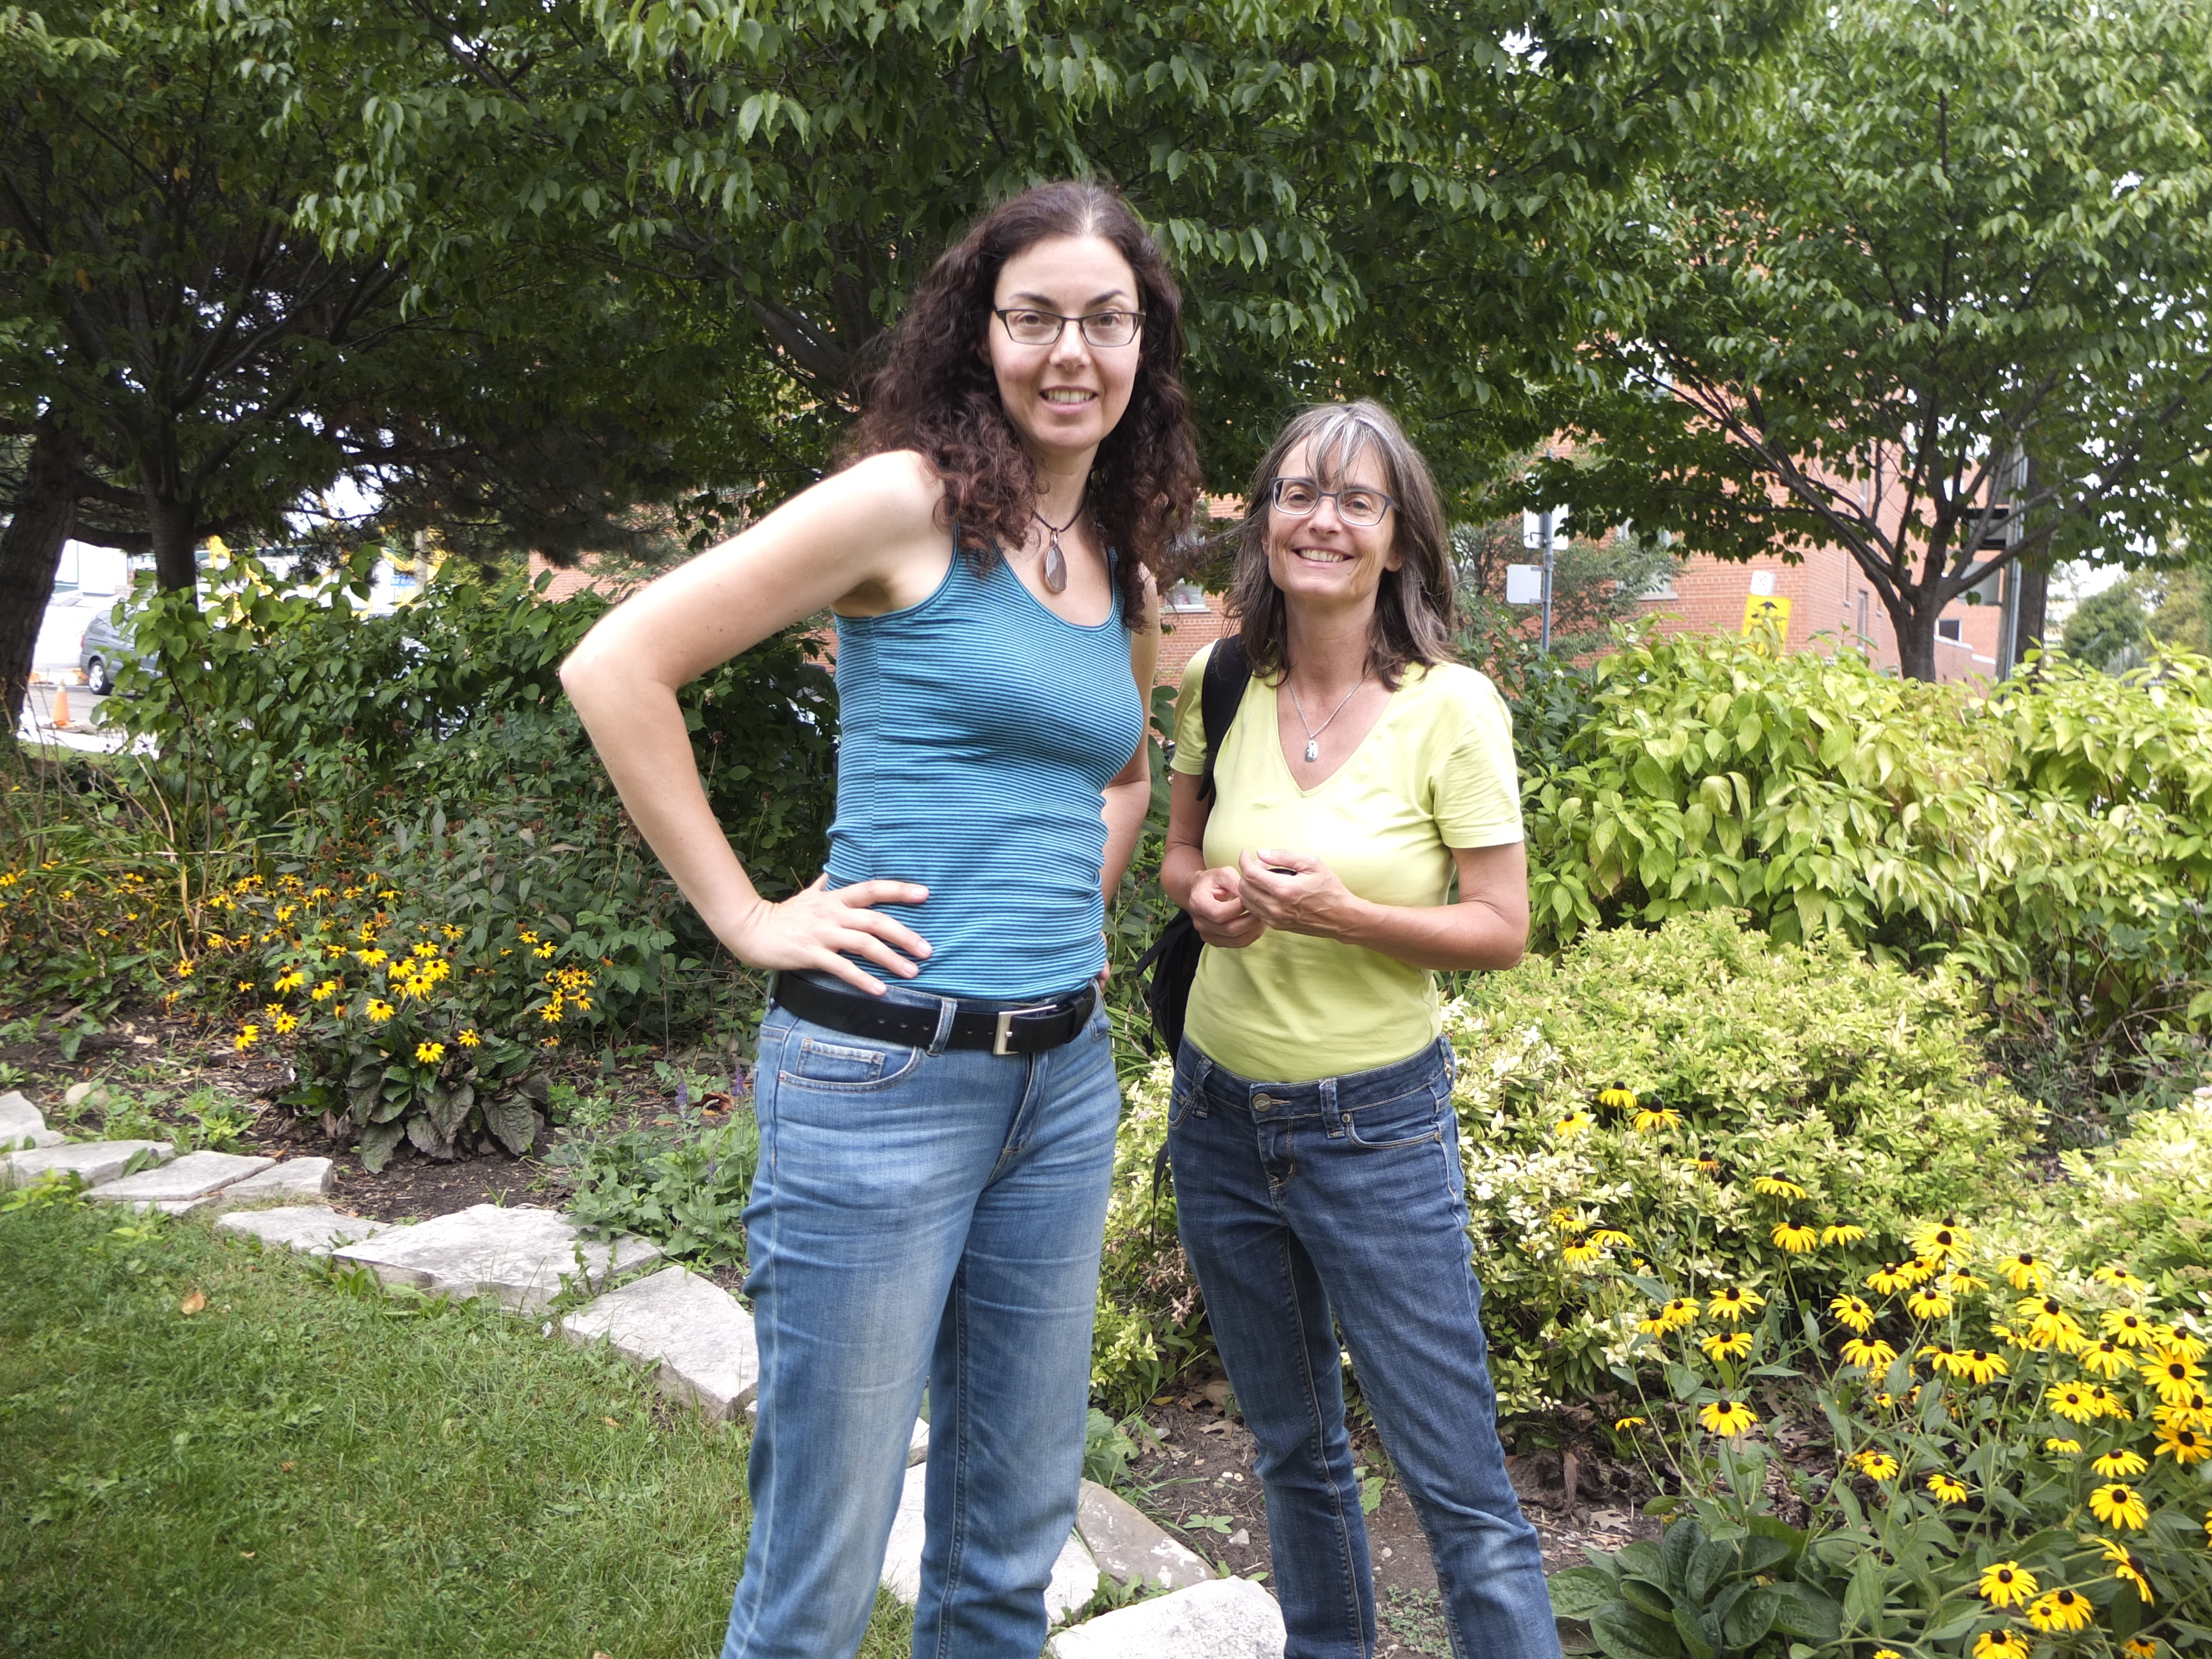 Monika Jaggi (right) with Susan Poizner in Ben Nobleman Park Community Orchard in 2015. Monika has been following the Ben Nobleman Story and writing about it in Basel, Switzerland where there is a debate about whether or not to plant fruit trees in local parks.